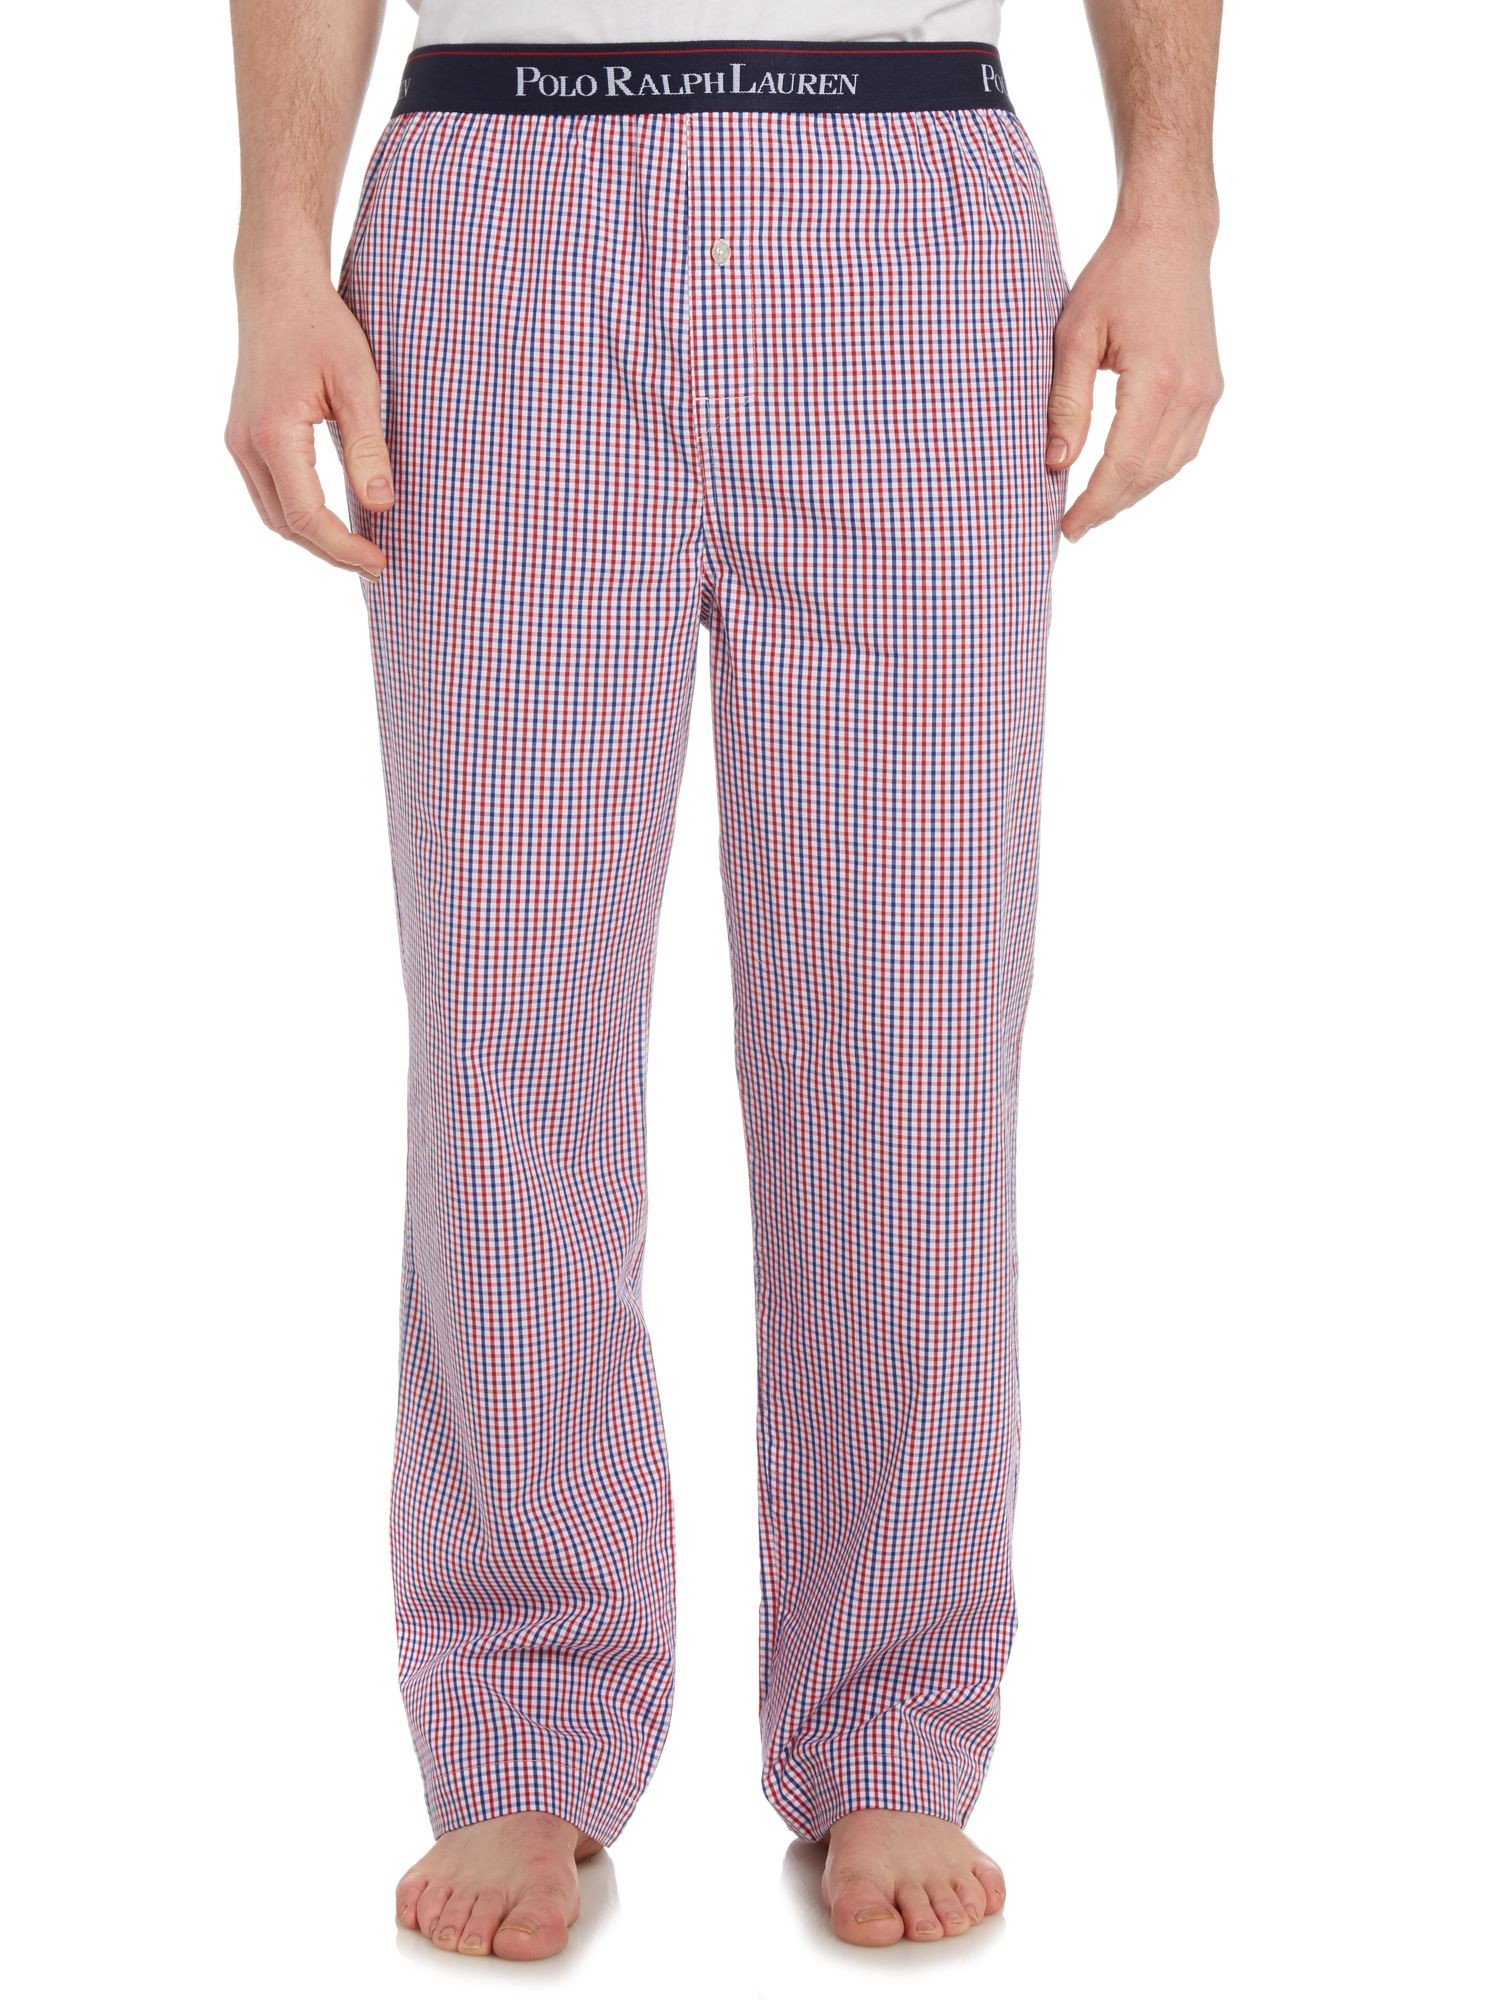 Plaid nightwear pant